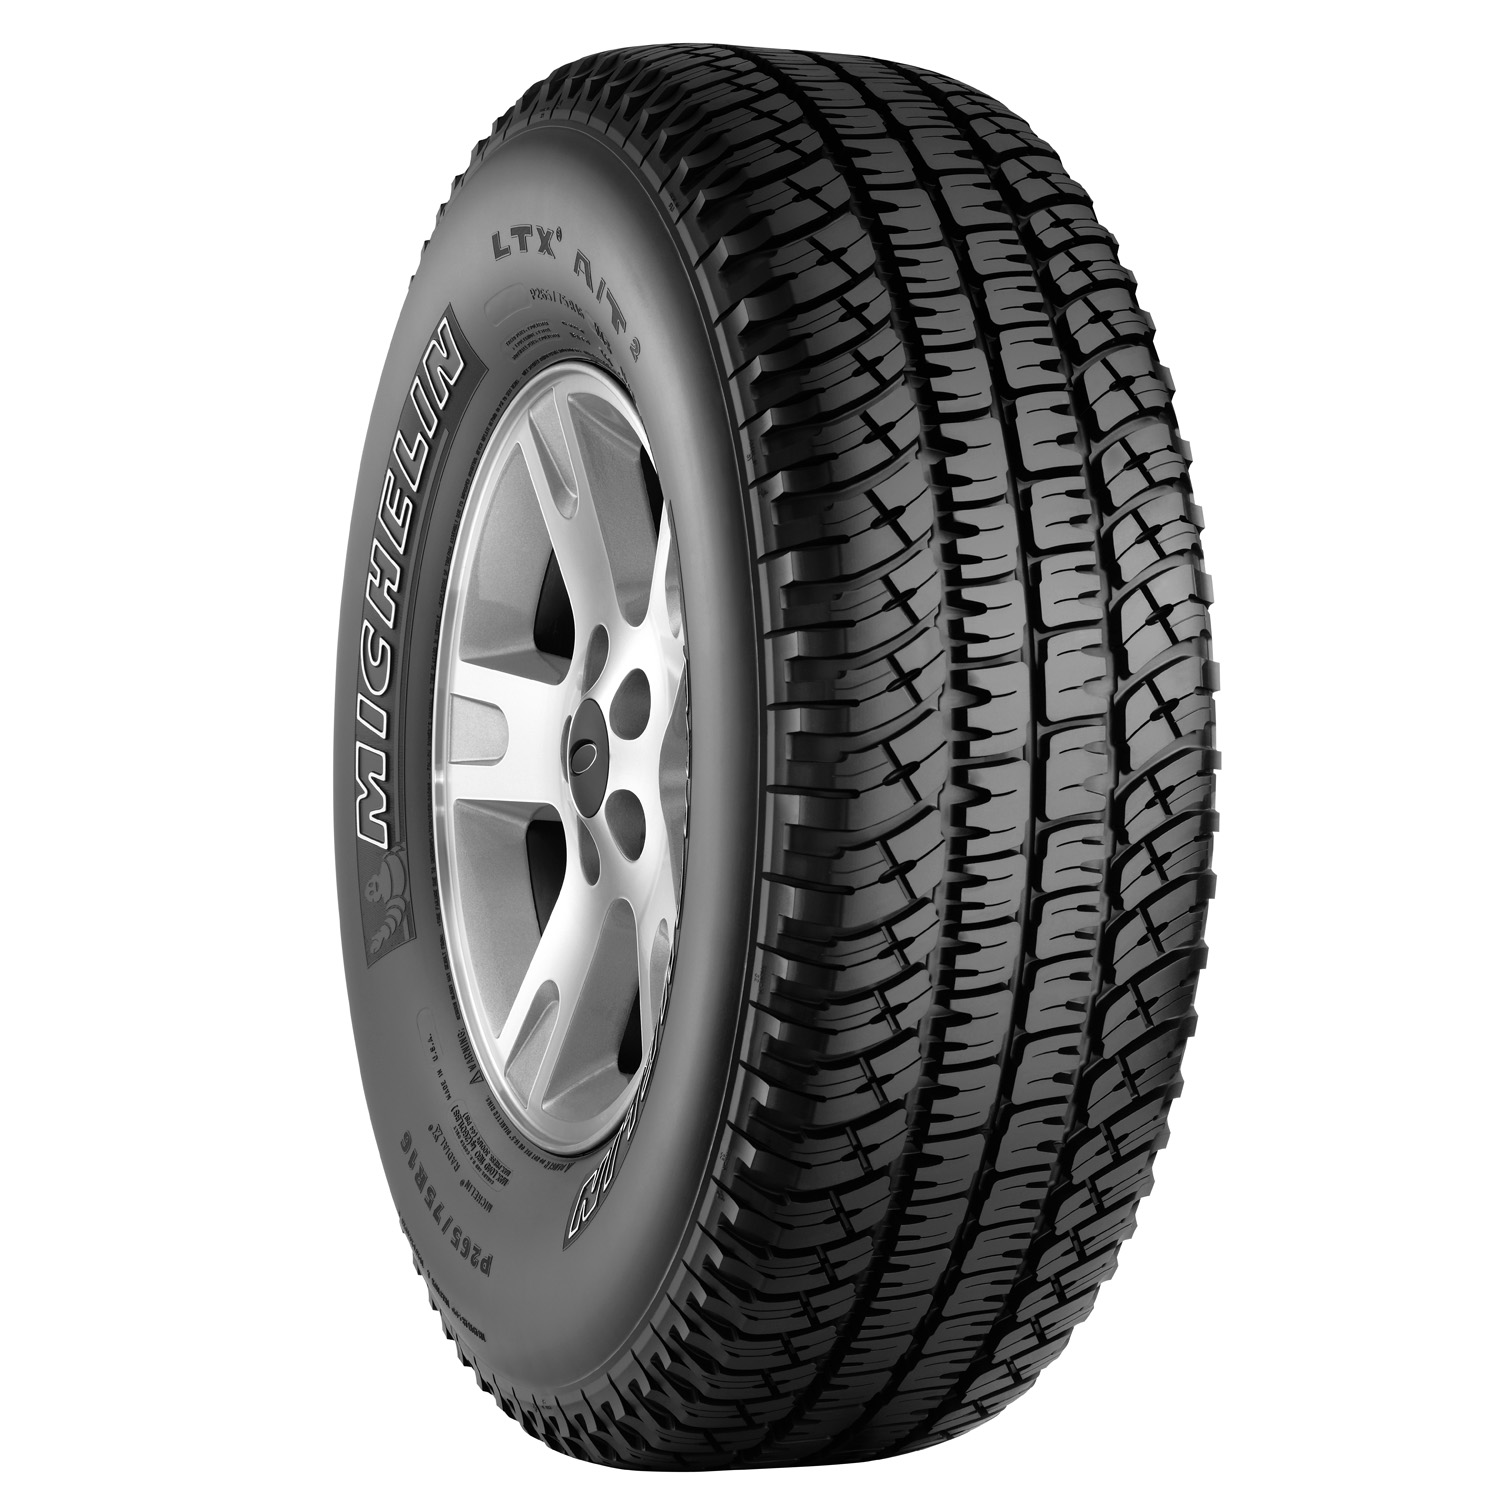 Michelin LTX A/T 2 - LT265/70R17E 121/118 R OWL - All Season Tire 265-70-17